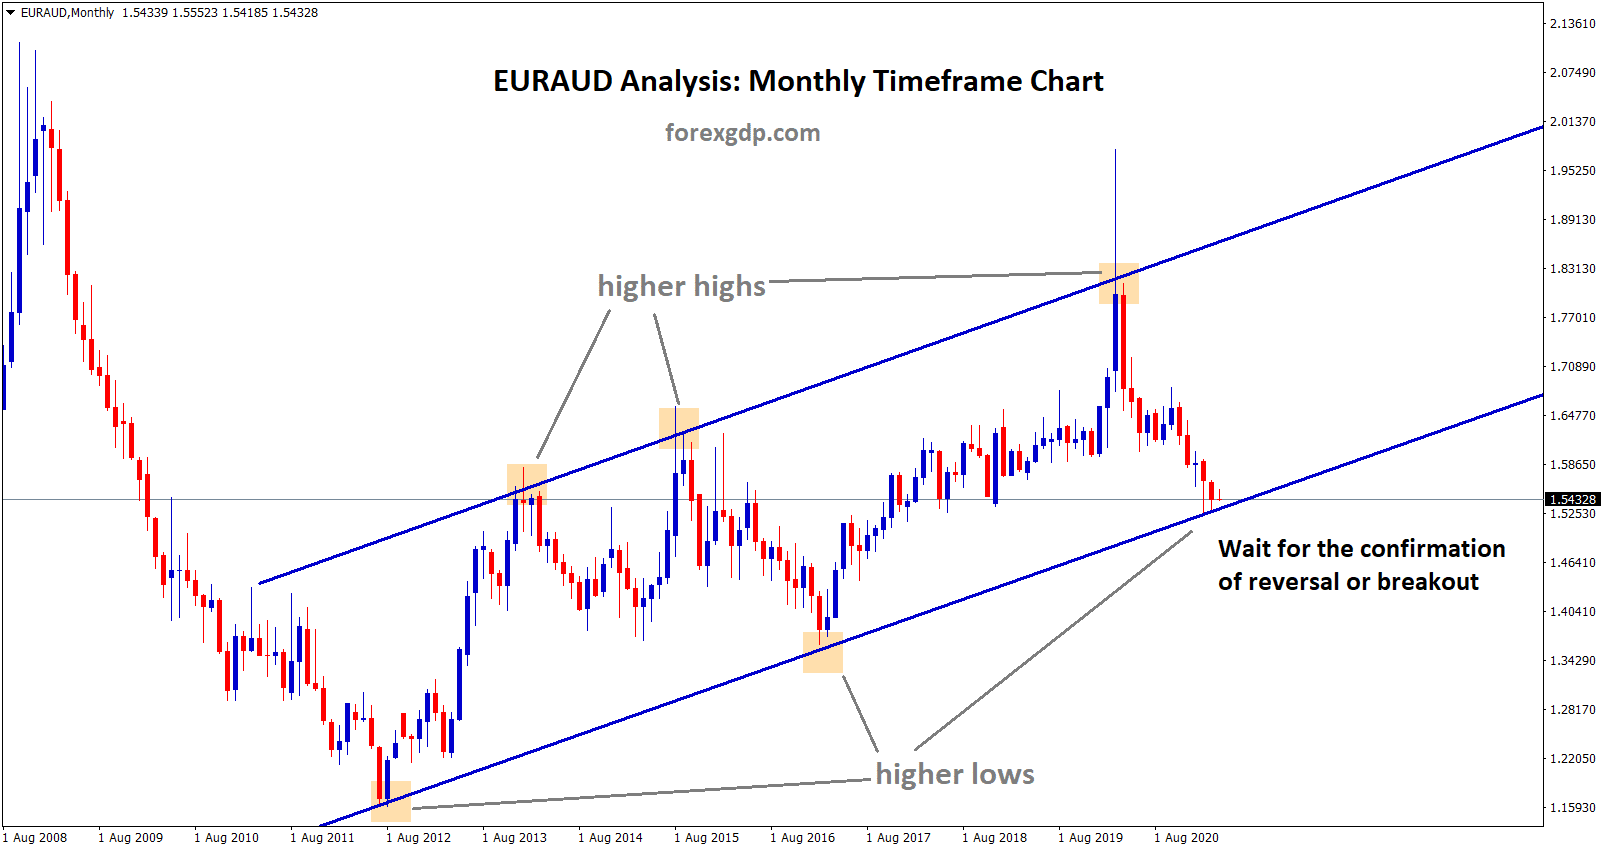 EURAUD has reached the higher low level of the Uptrend line